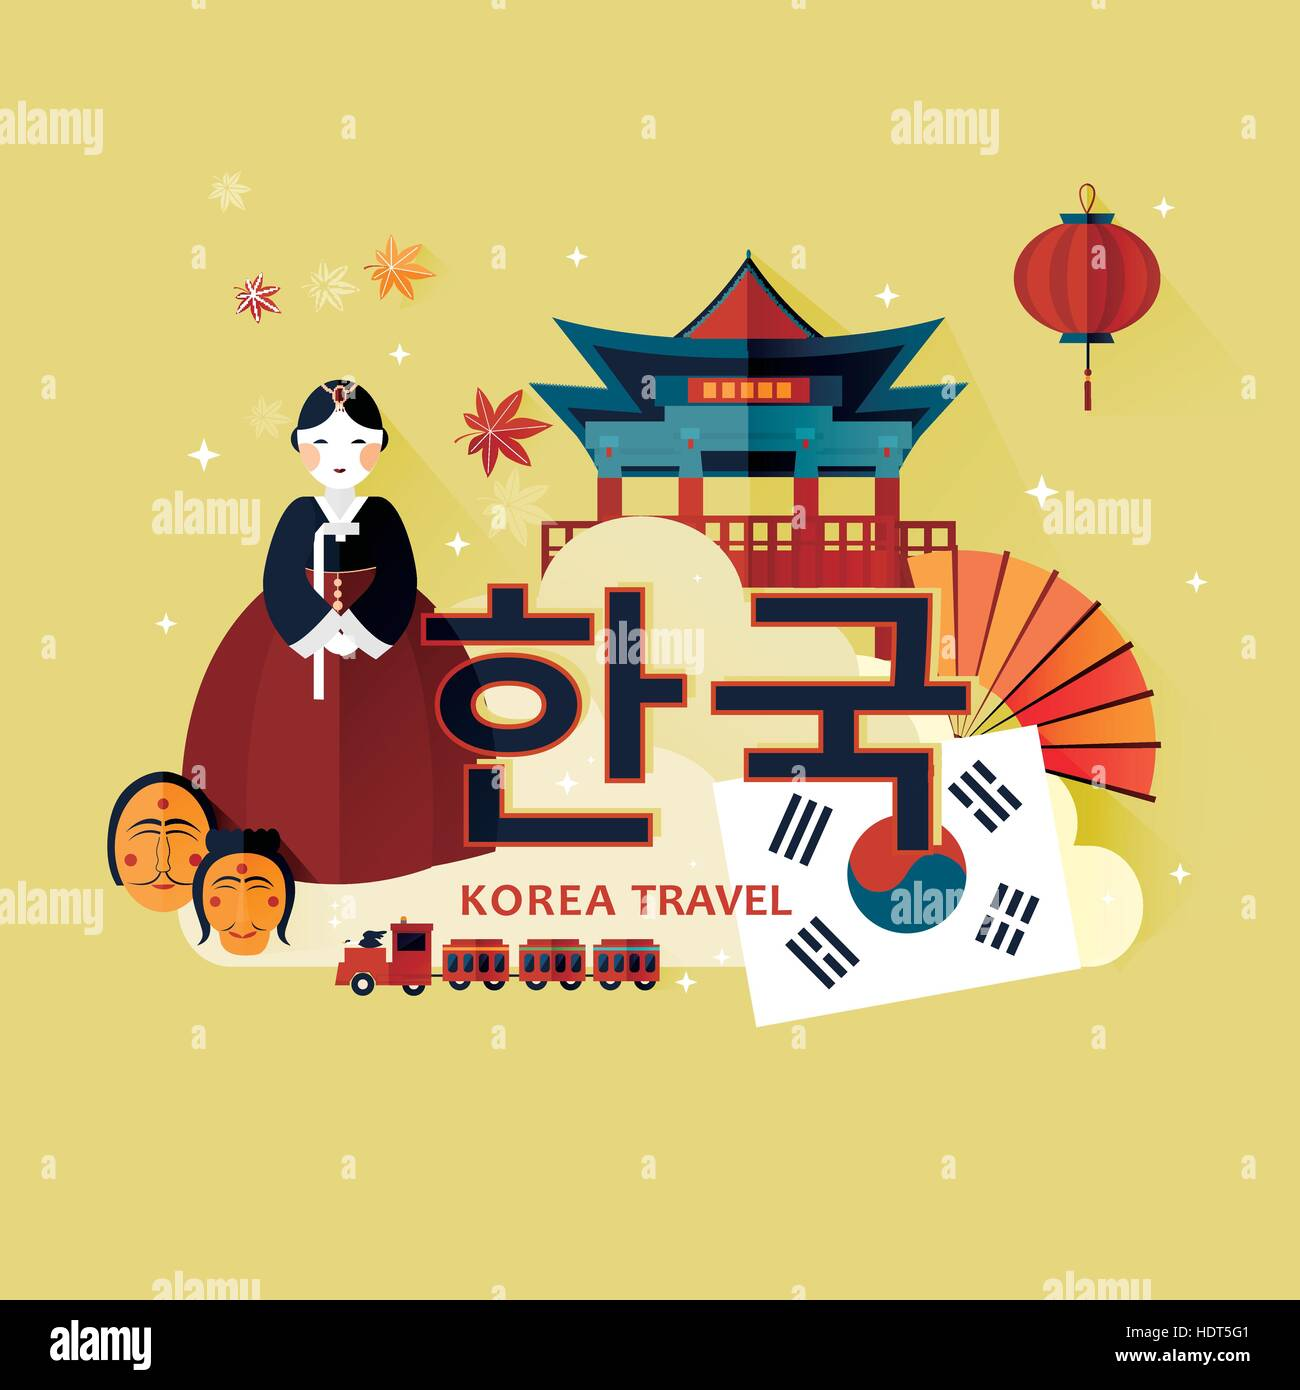 Traditional Korean Culture Symbol In Travel Poster Korea In Korean